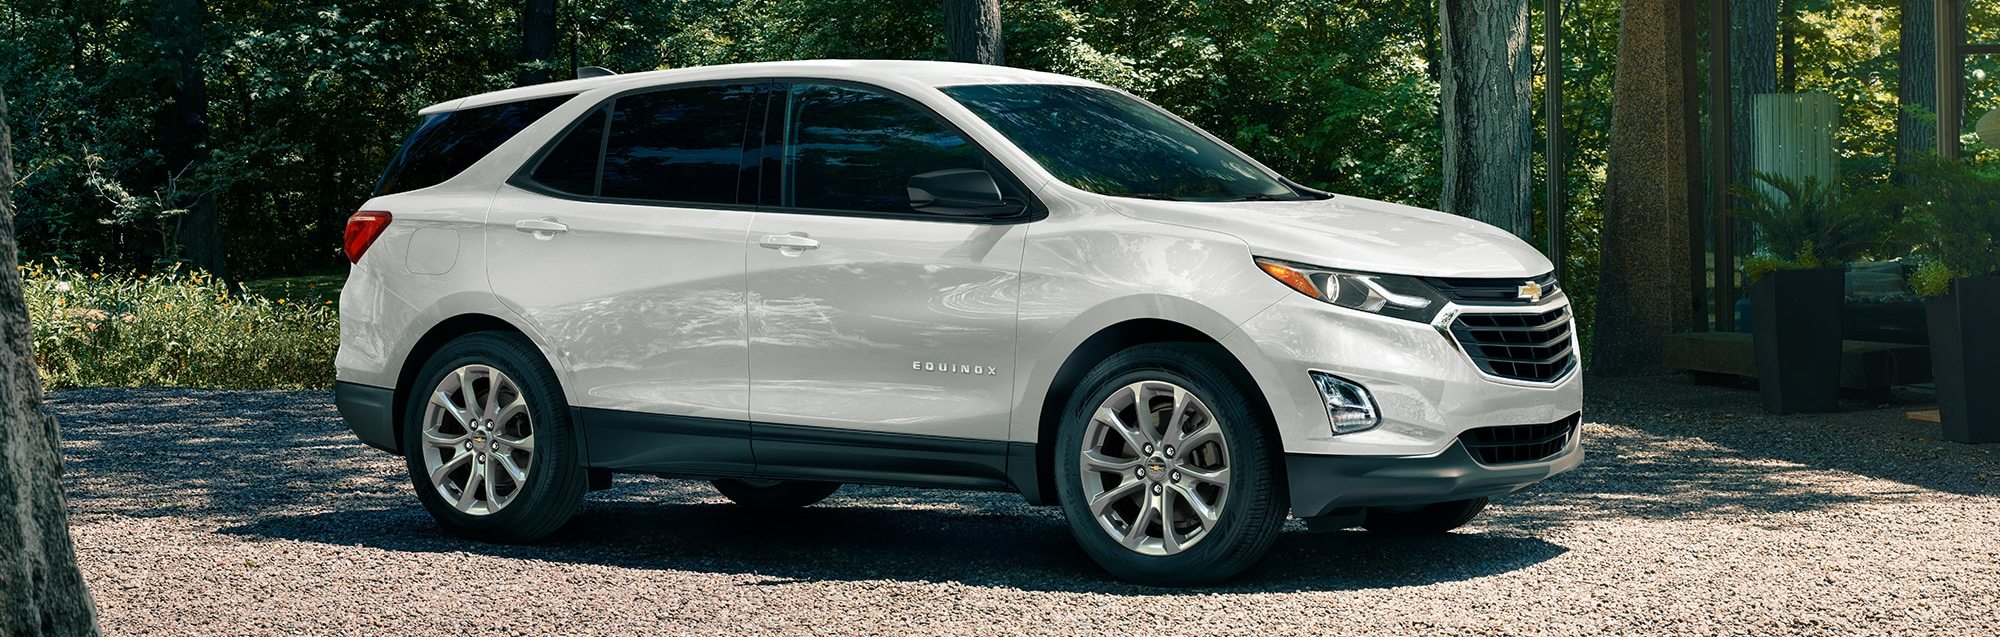 What's New for the 2020 Chevy Equinox?